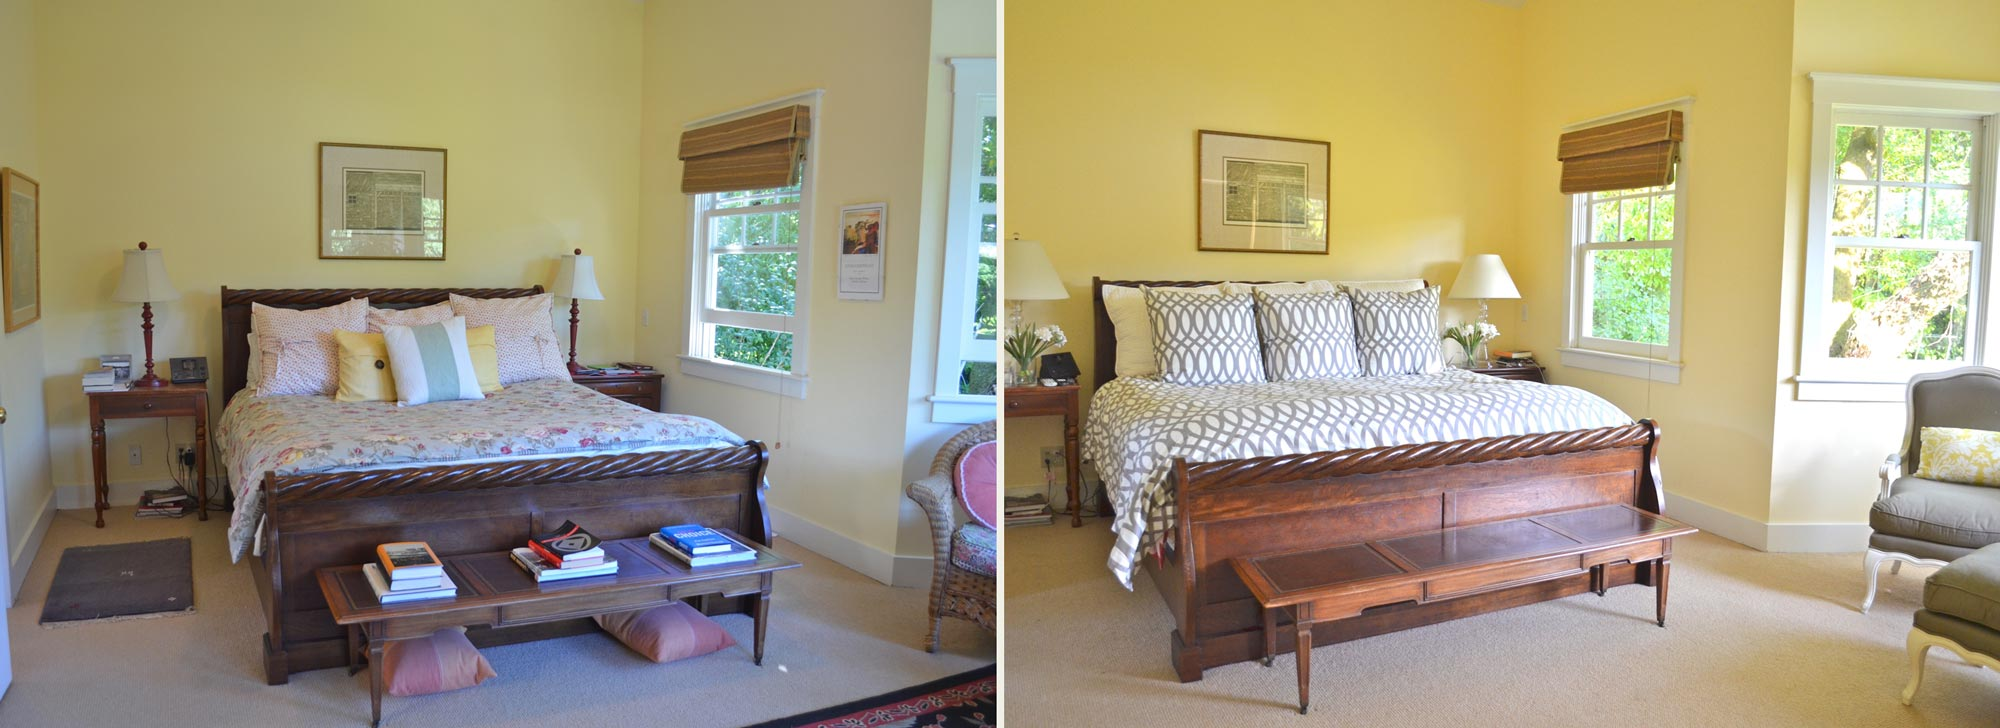 cary-nowell-staging-before-after-14.jpg